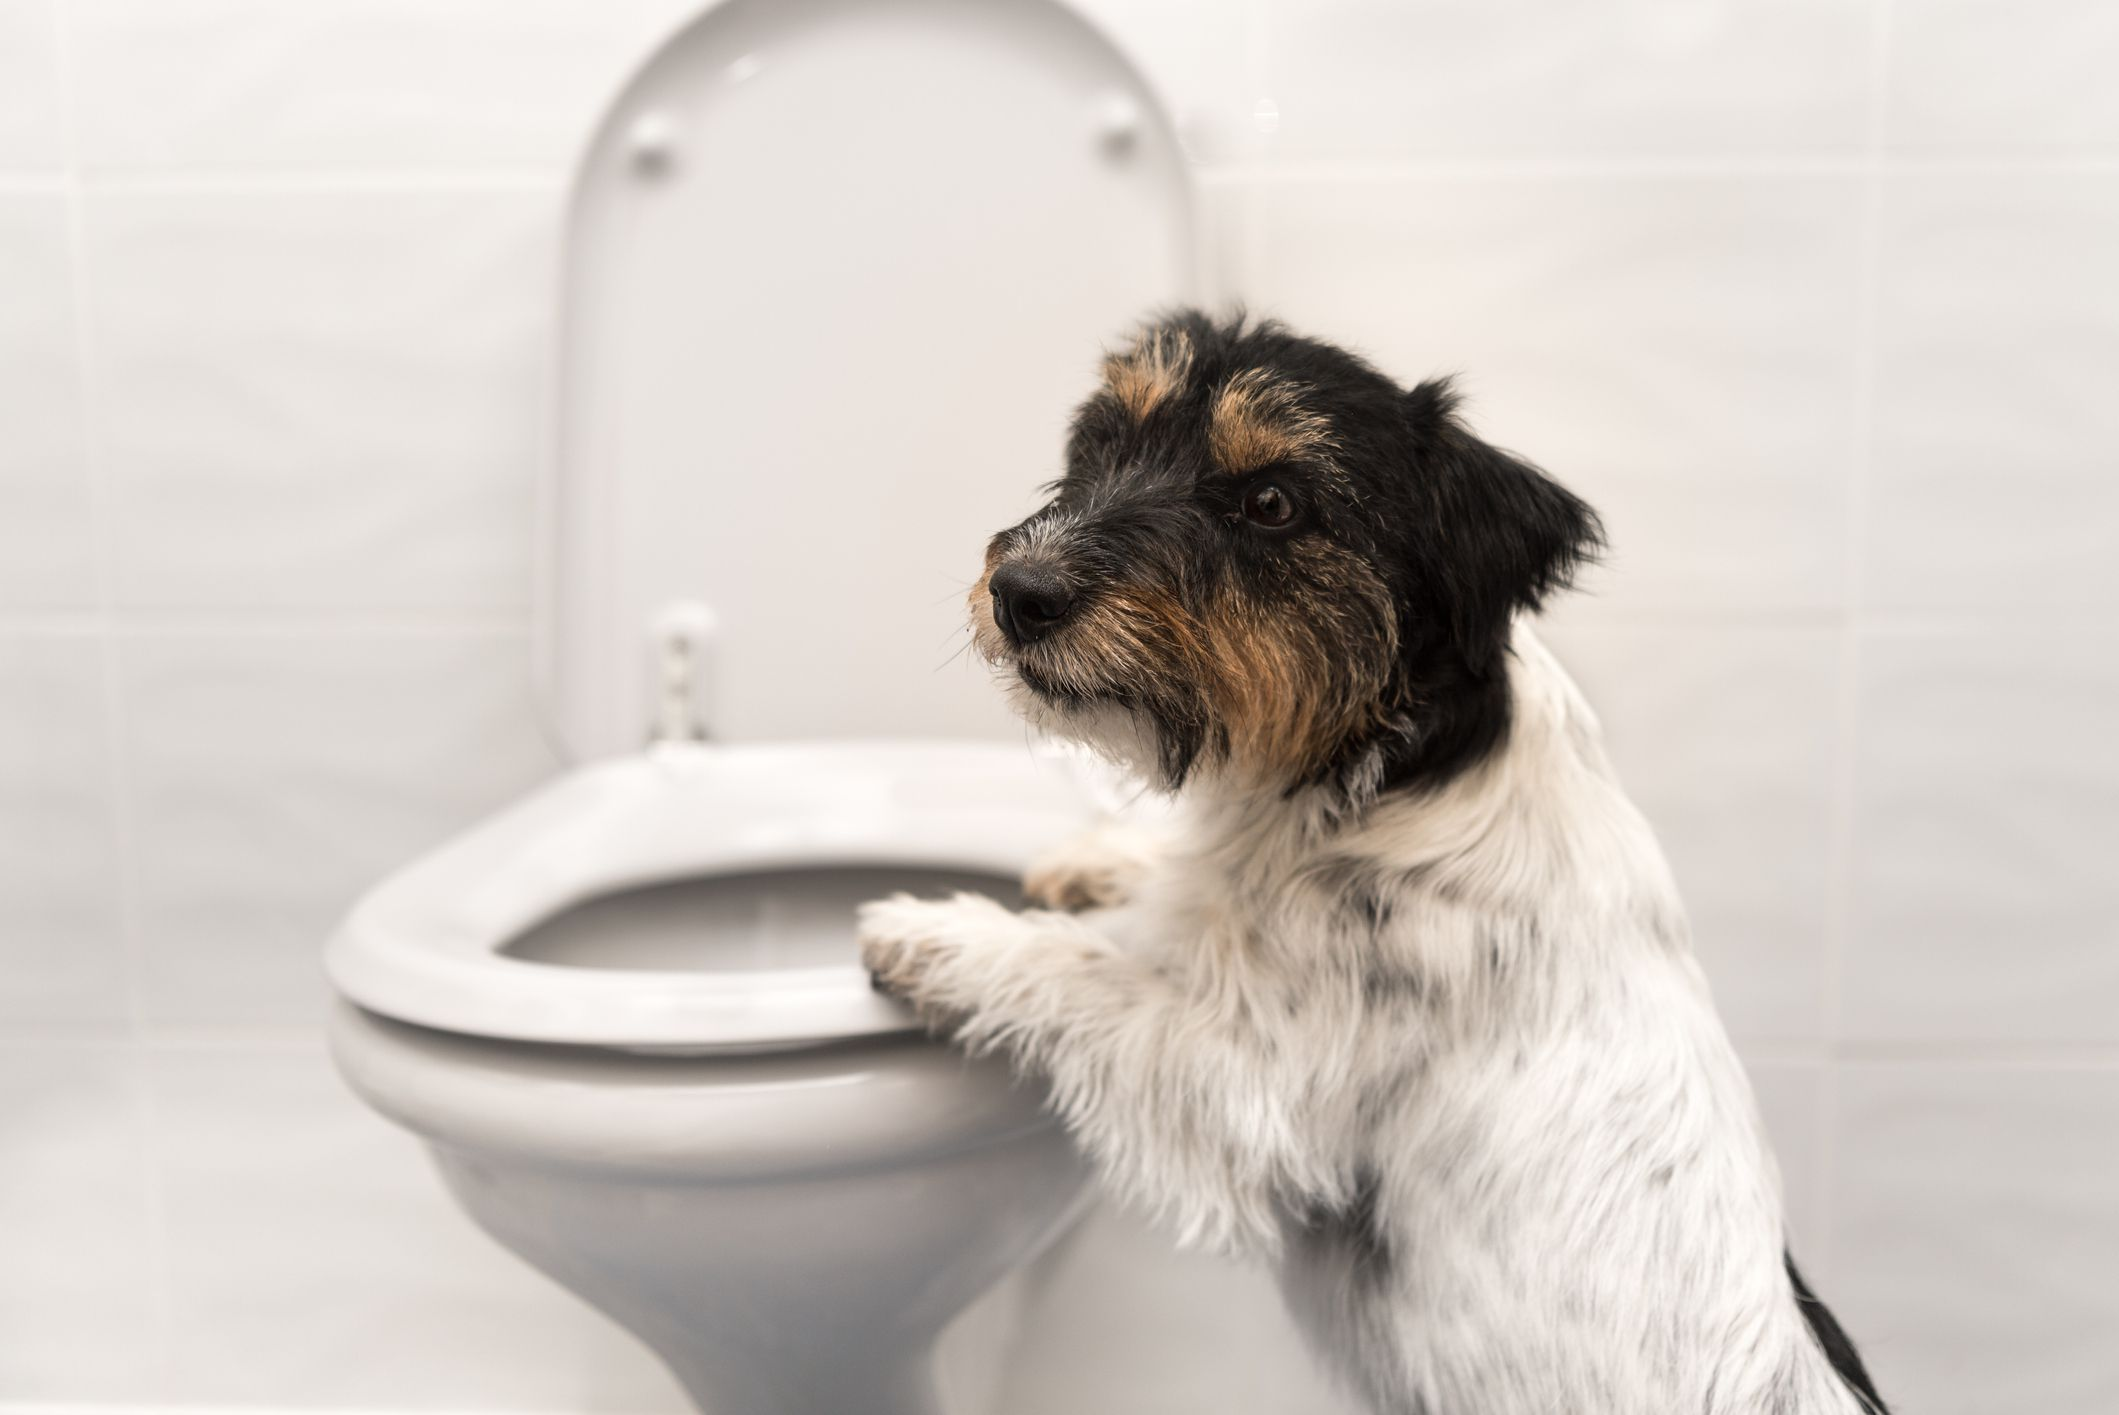 Small dog with two front paws on toilet.